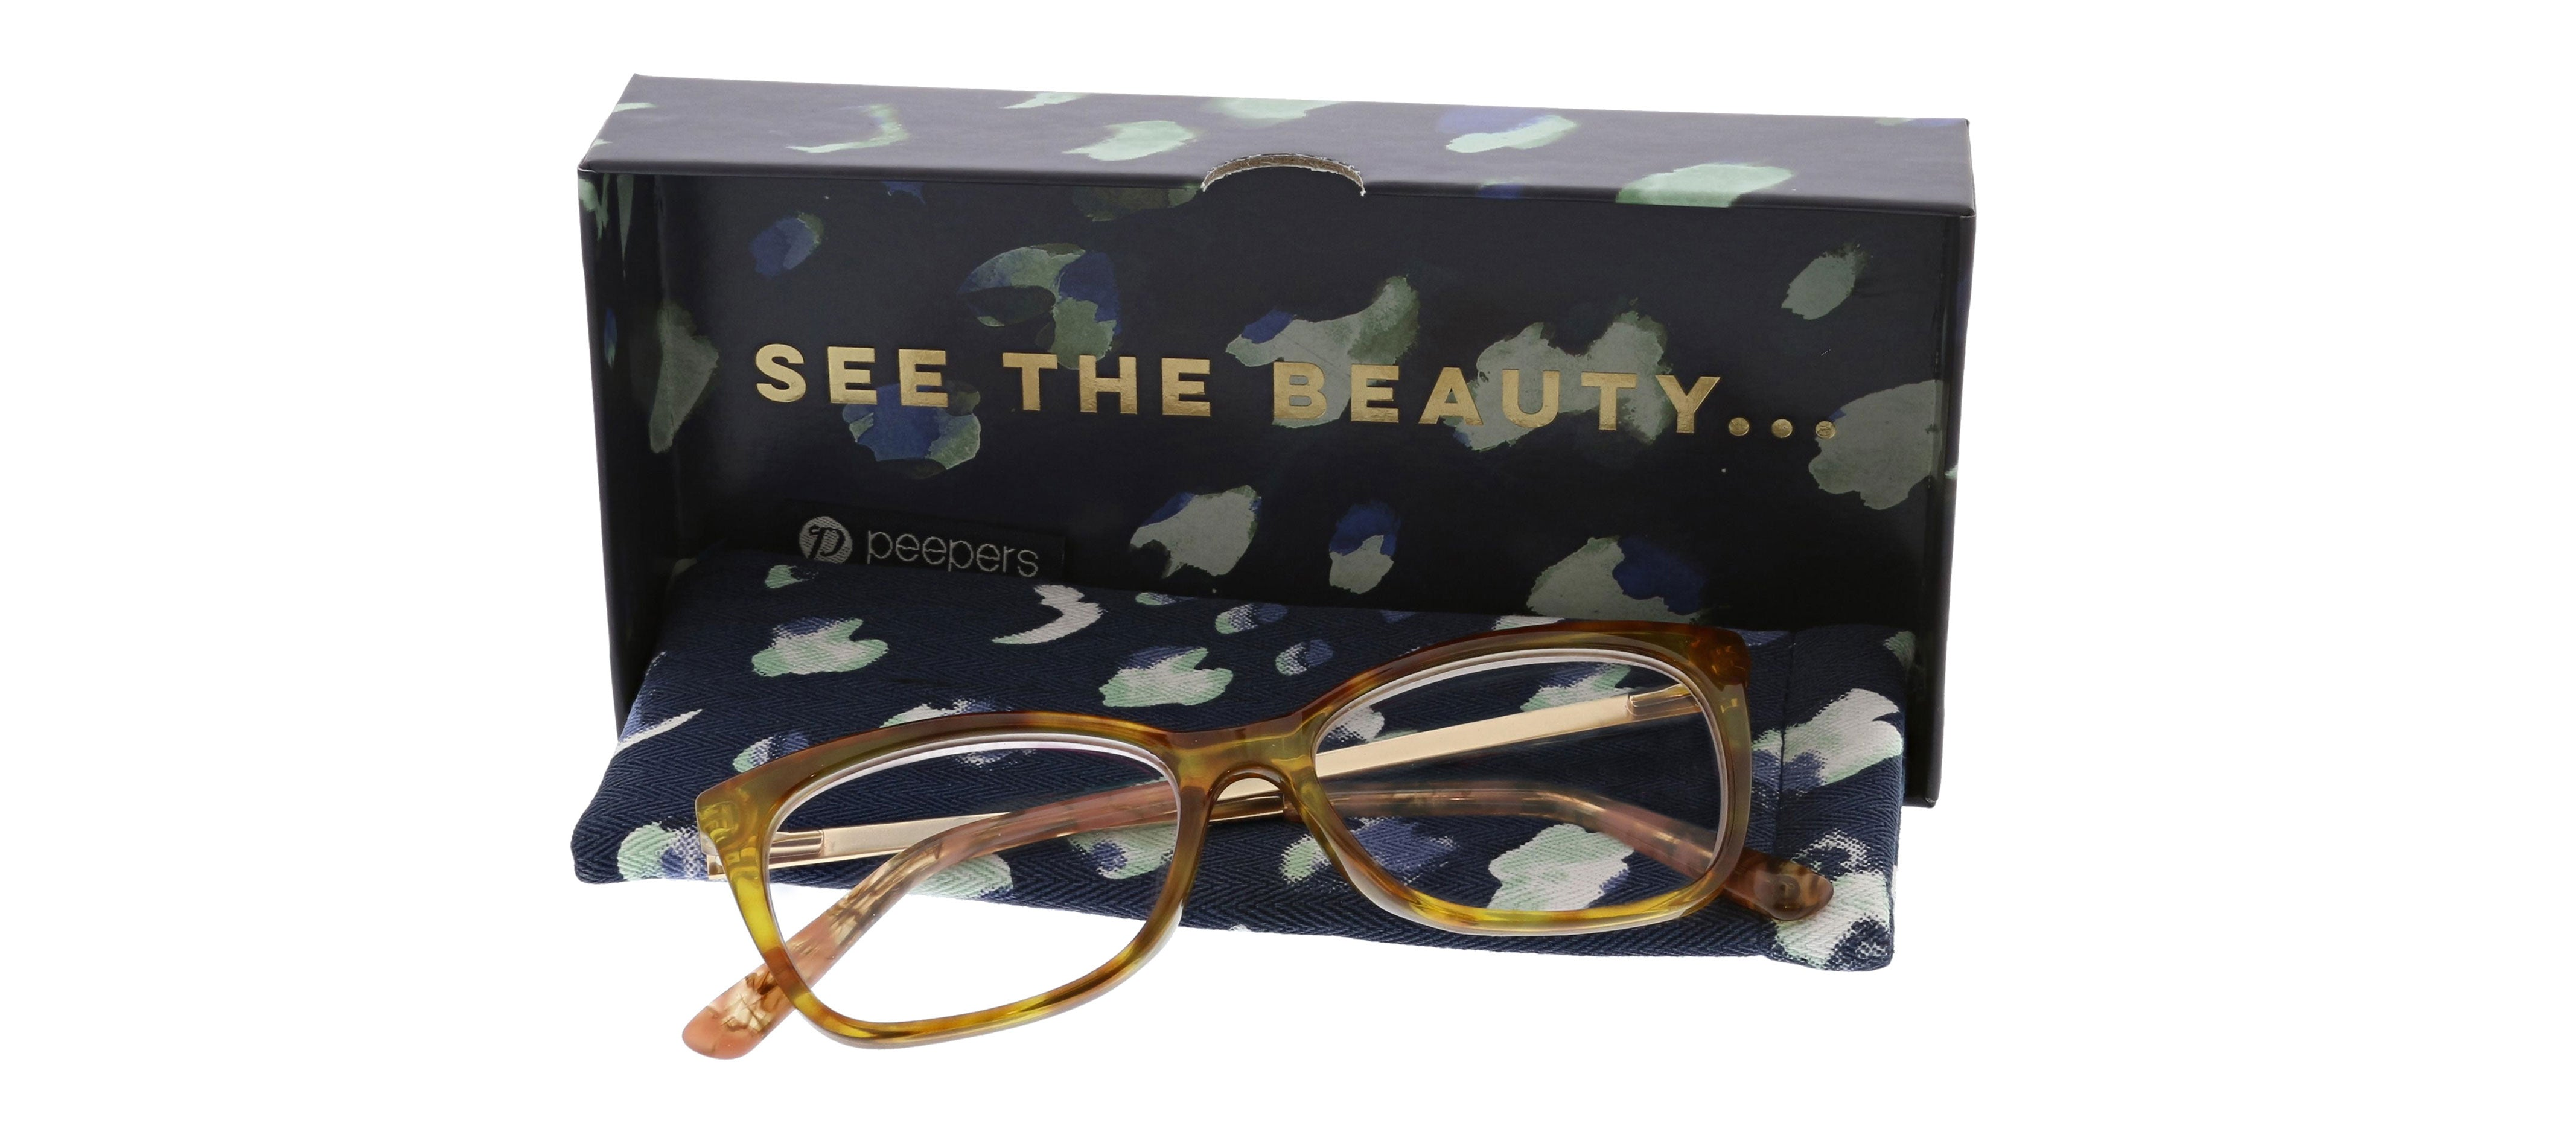 Peepers See The Beauty blue light glasses packaged in box